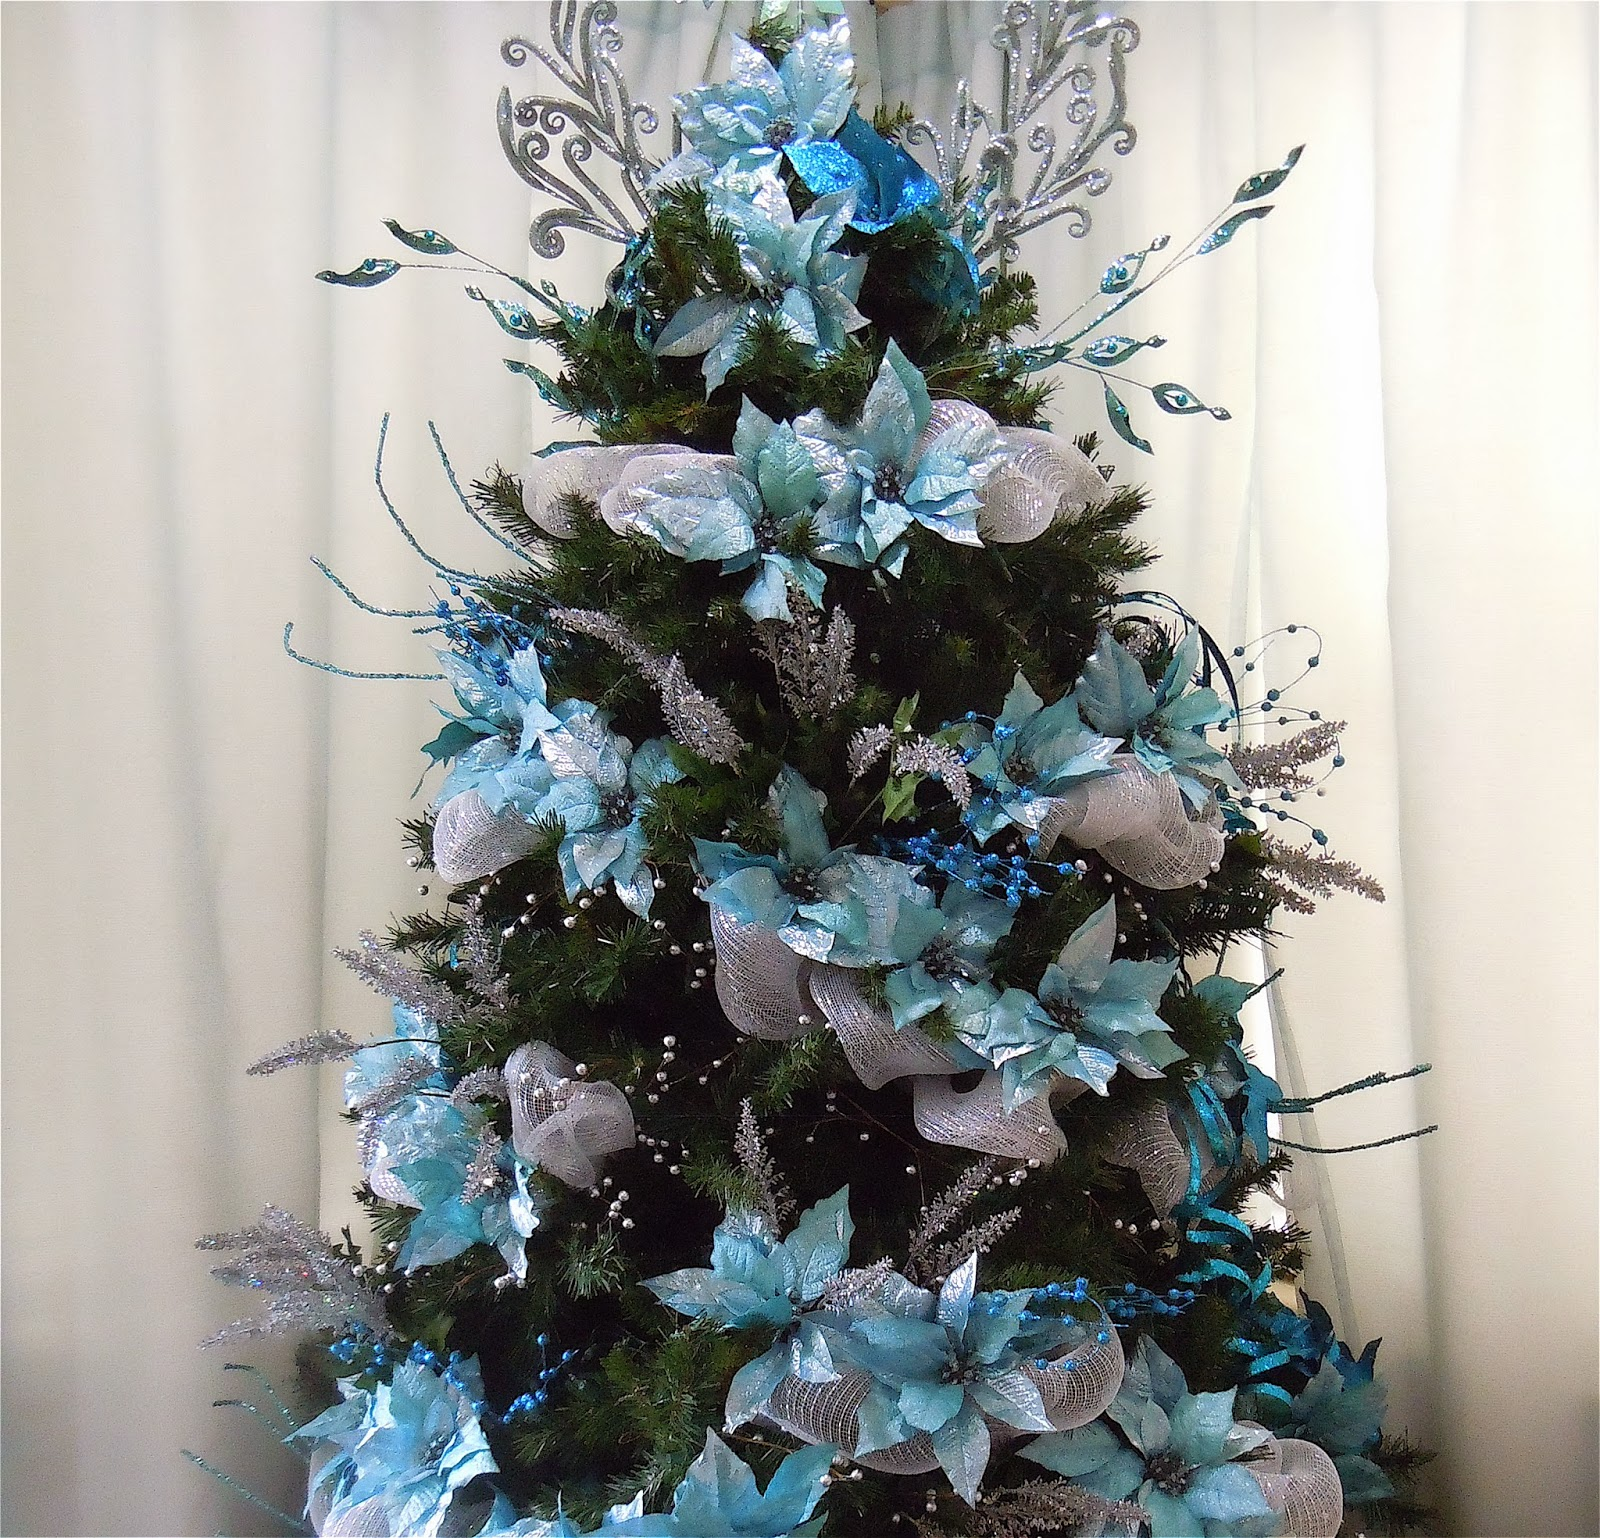 blue and silver decorated christmas tree christmas decor styles blue silver christmas tree decorations christmas tree theme blue and silver hitez - Turquoise Christmas Tree Decorations